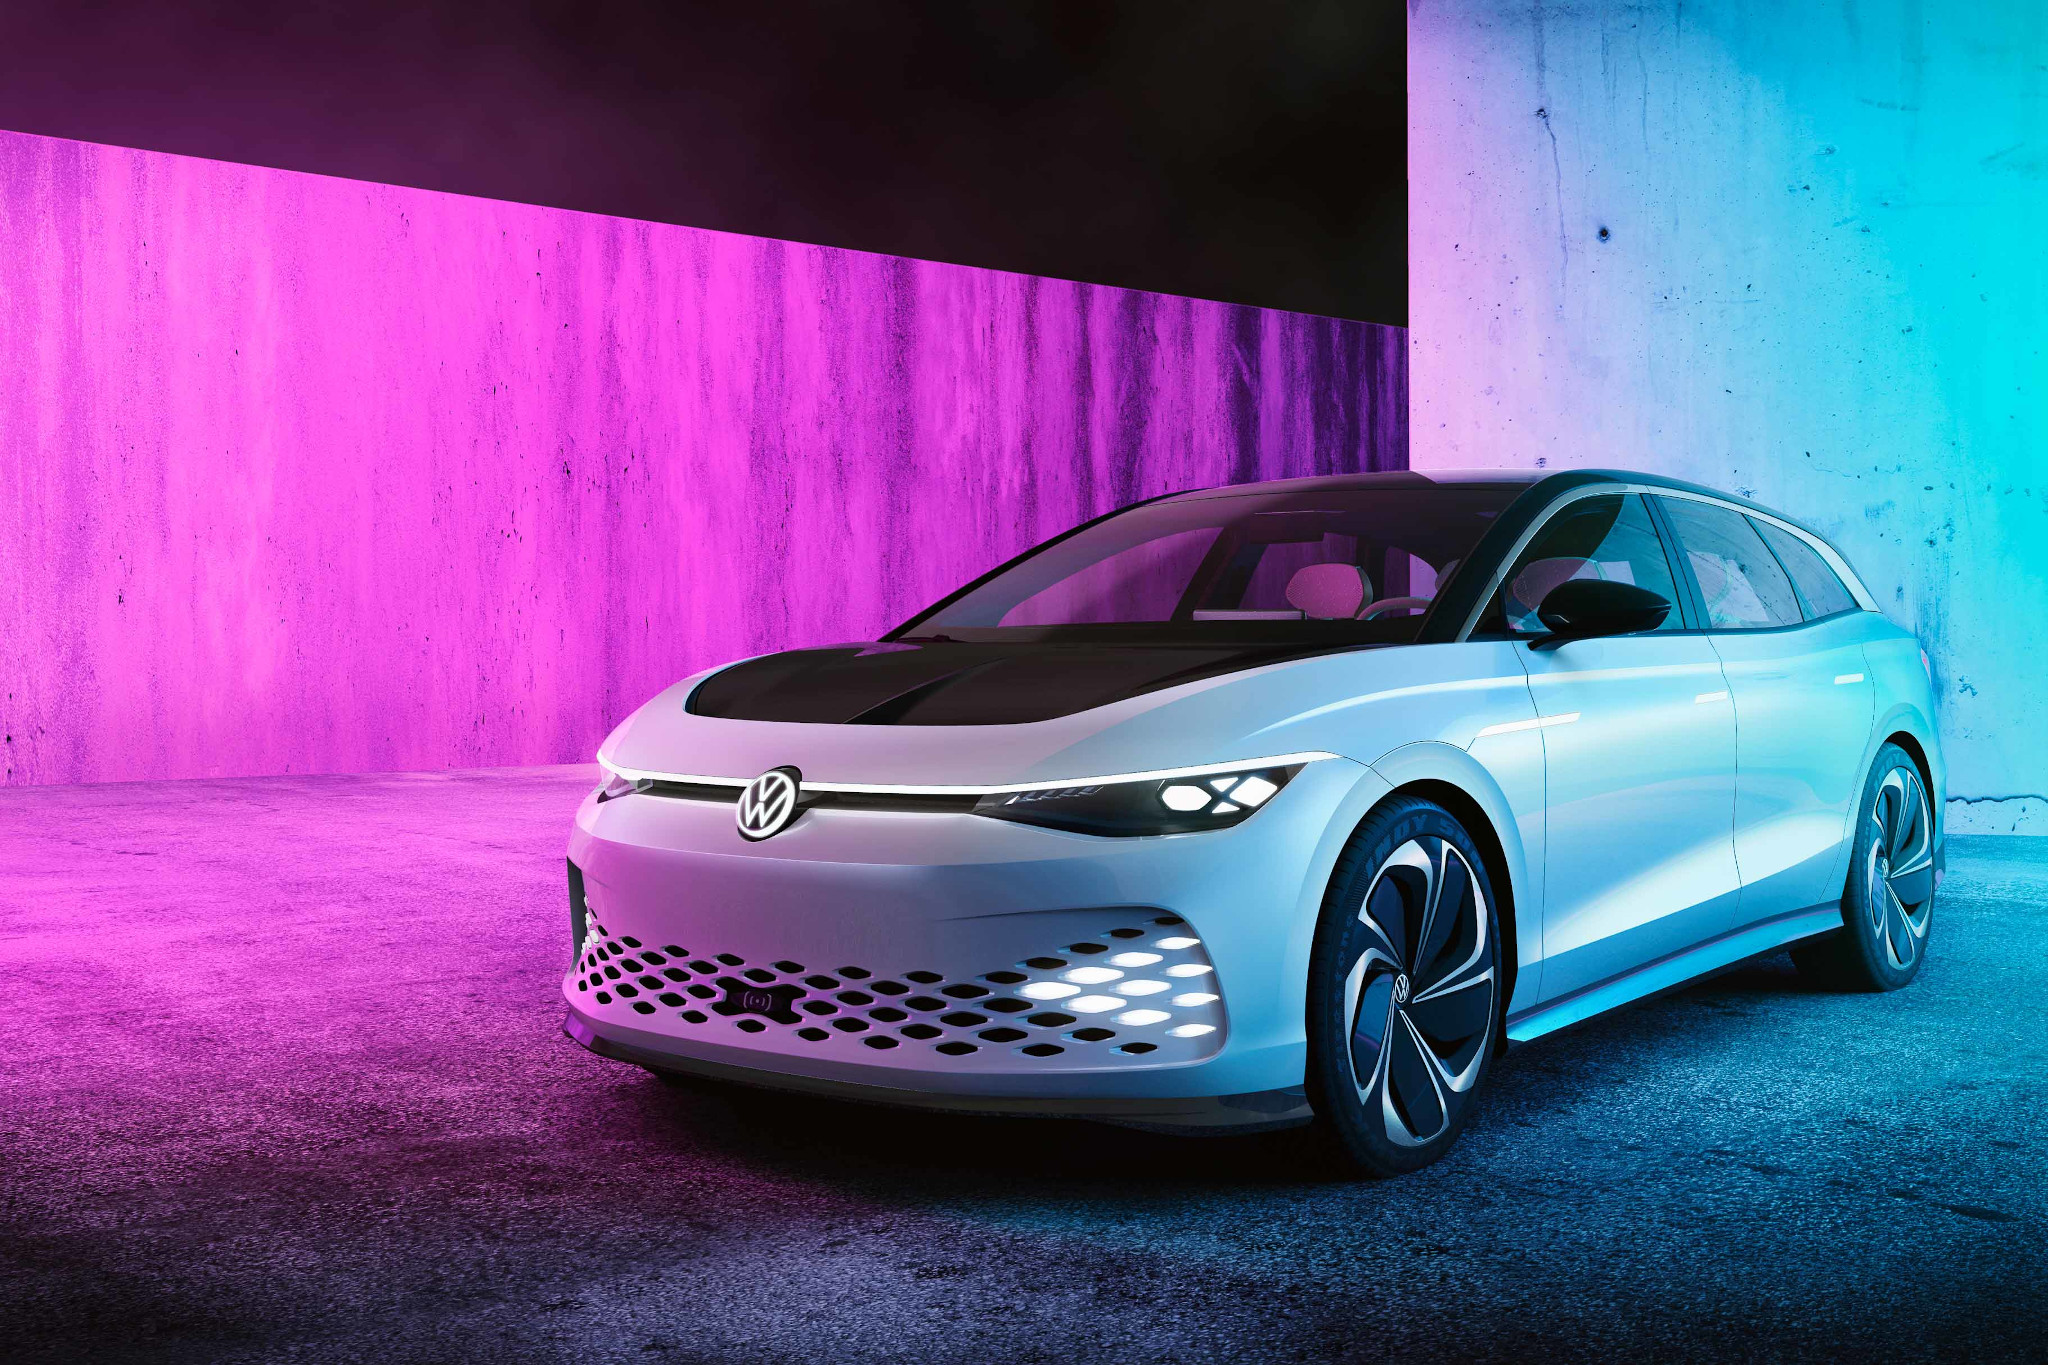 8 Gee-Whiz Things About the Volkswagen ID. Space Vizzion Concept